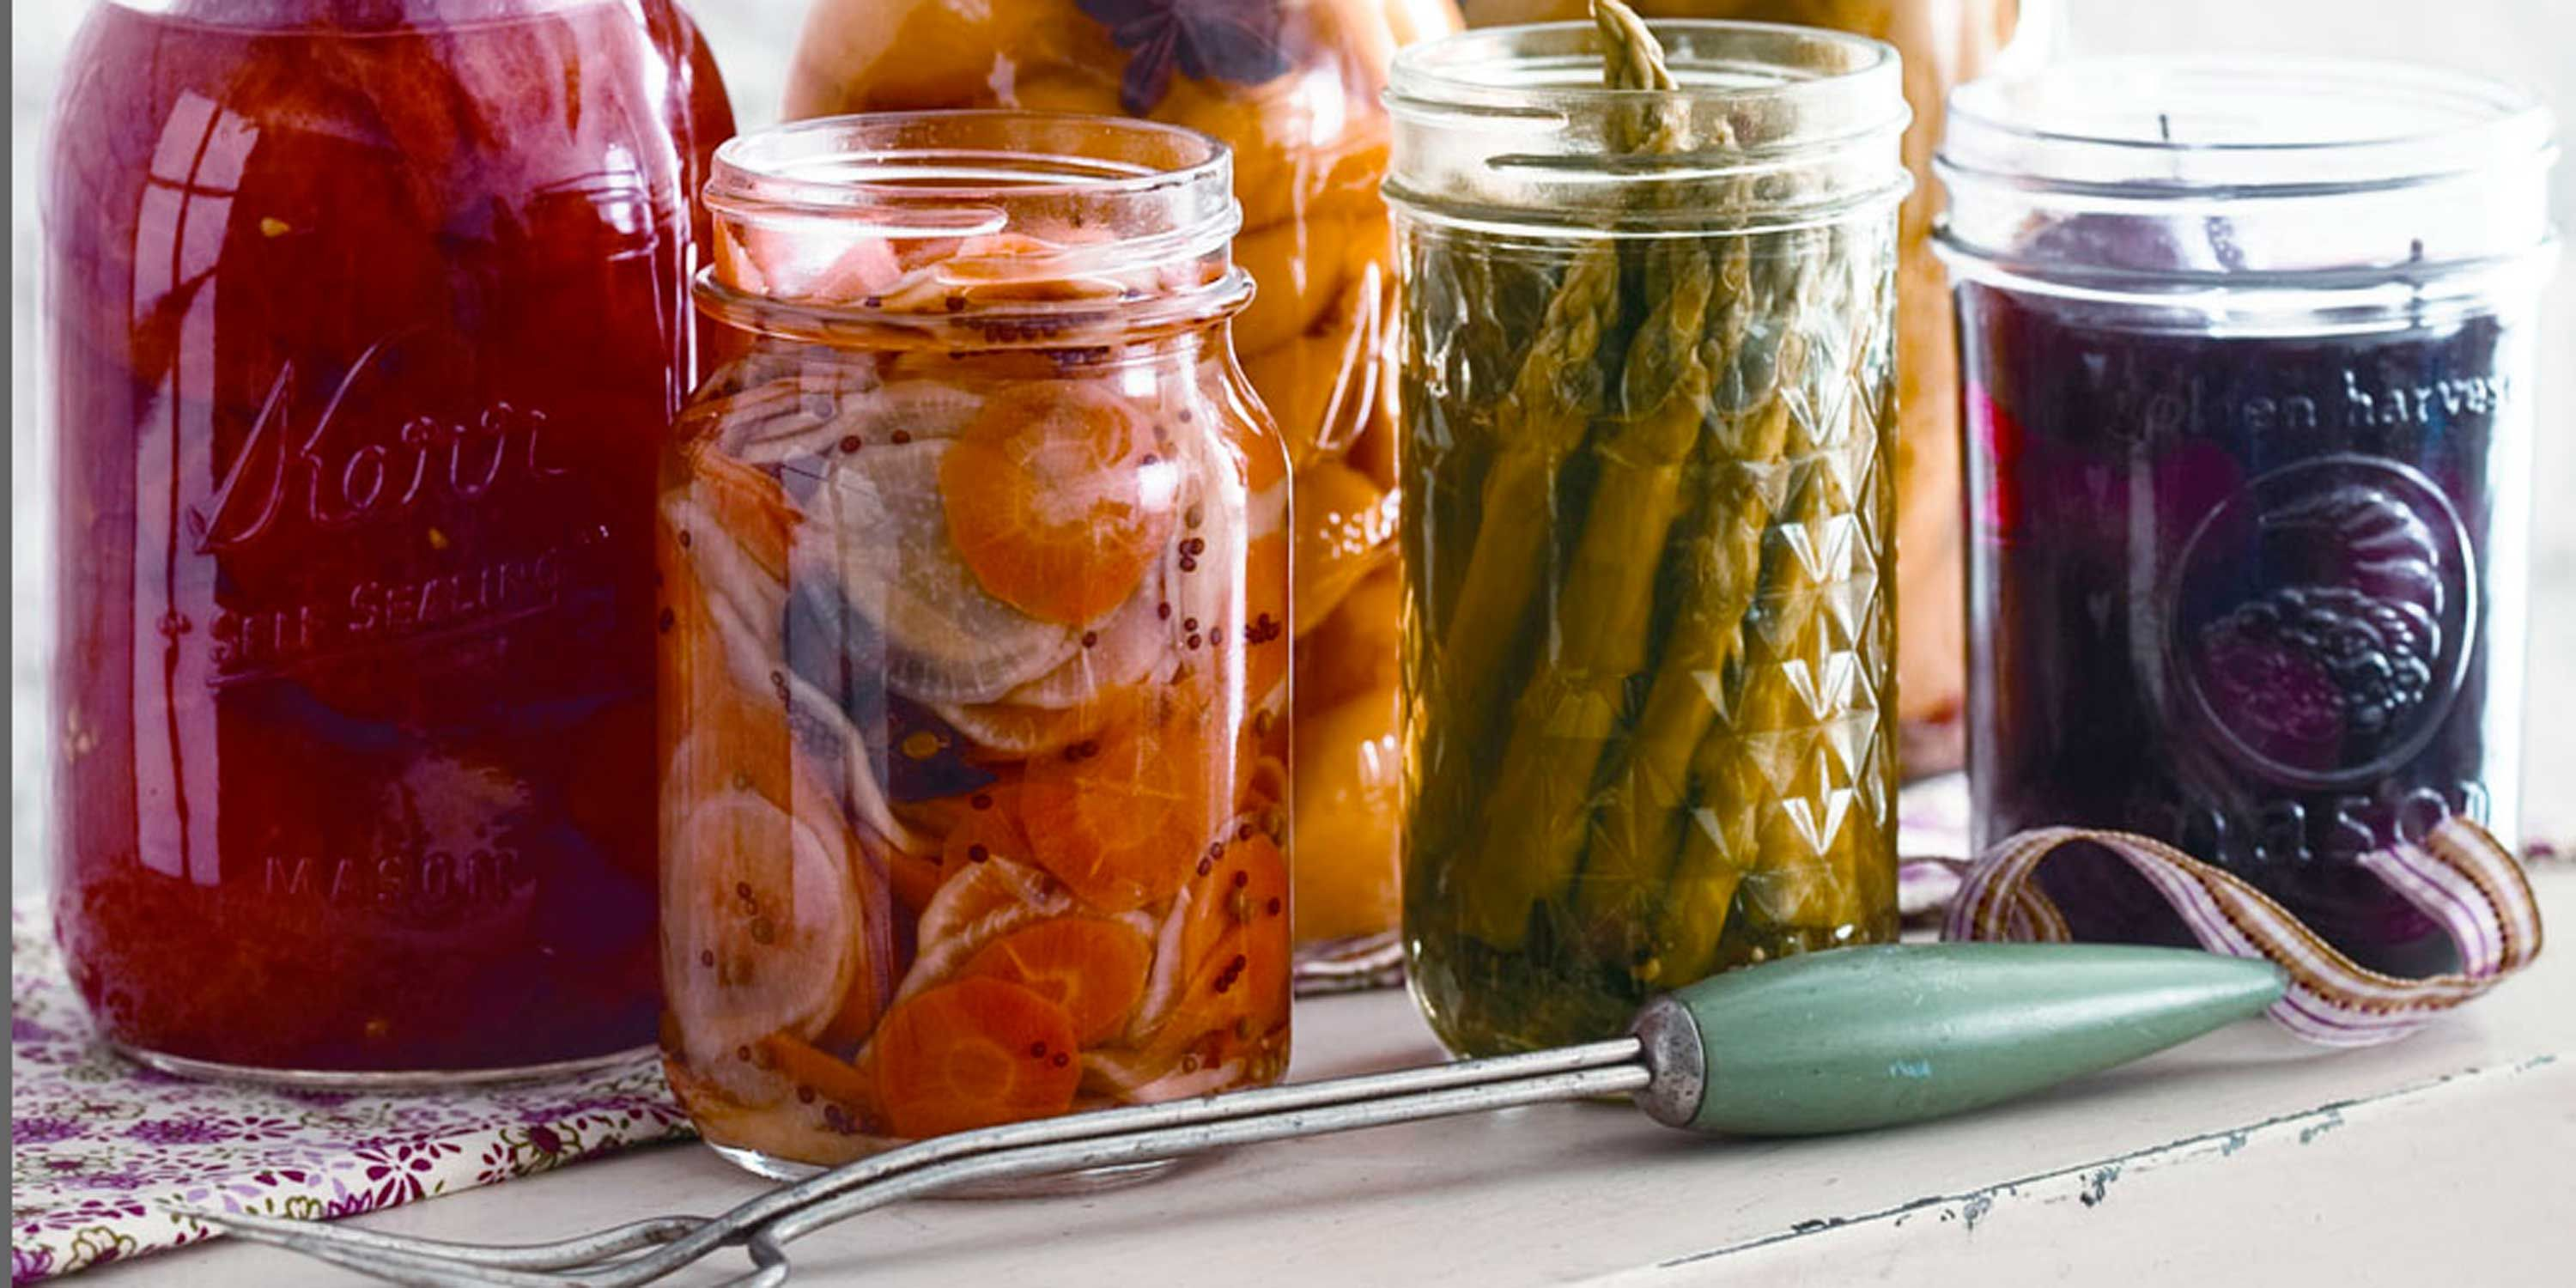 27 Easy Pickling Canning Recipes How To Make Homemade Refrigerator Pickles